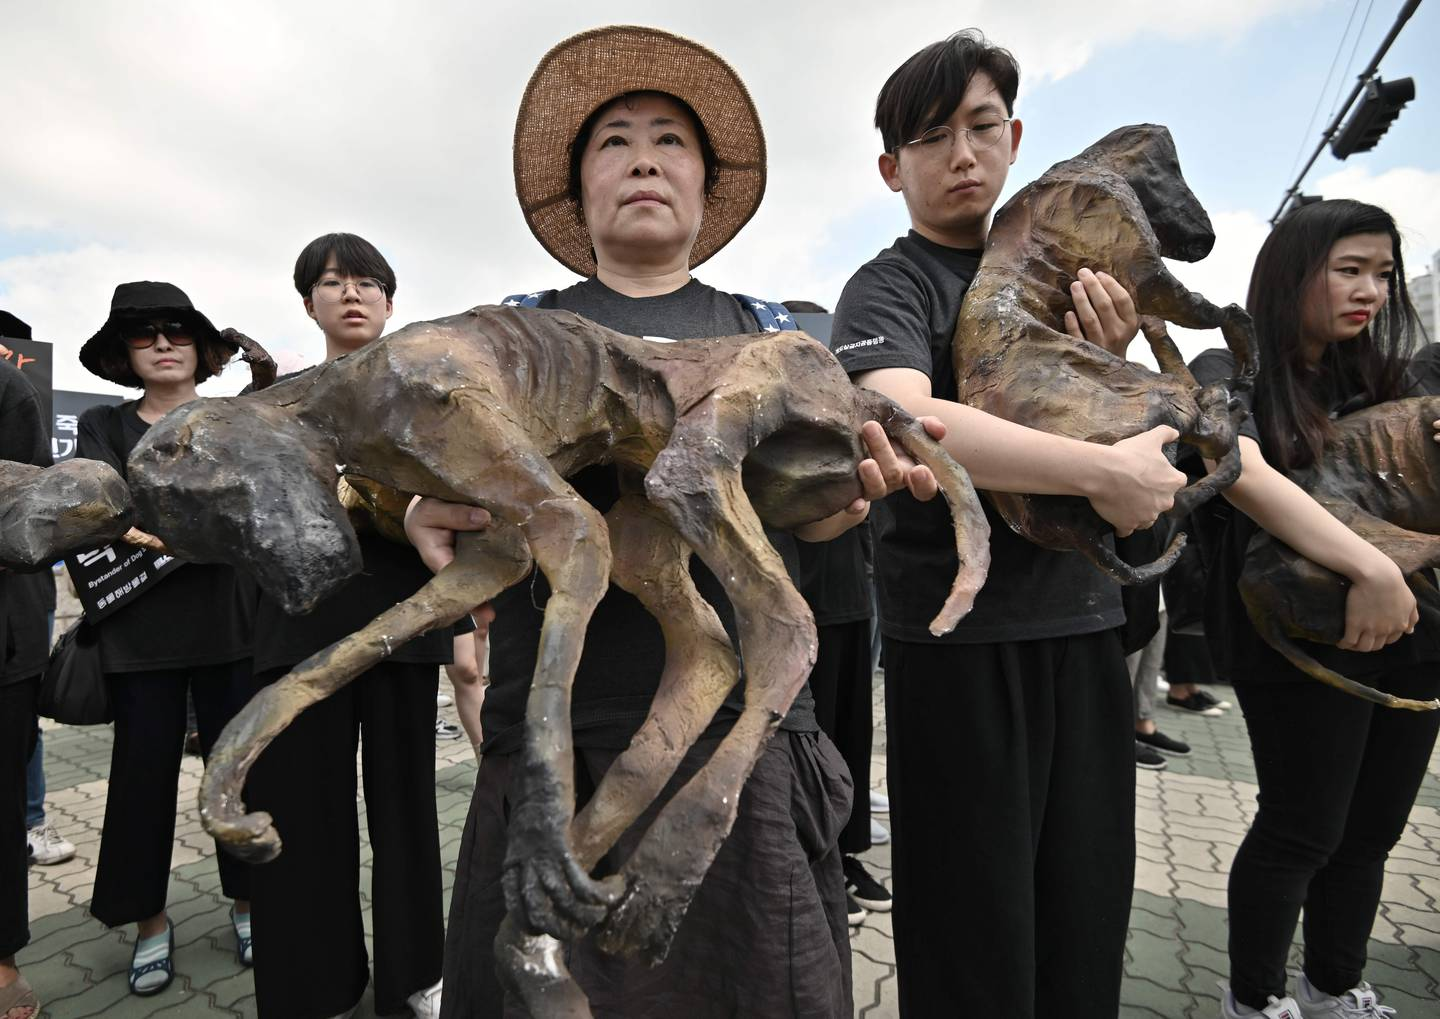 TOPSHOT - South Korean animal rights activists hold likenesses of dead dogs during a protest against the dog meat trade in front of the National Assembly in Seoul on July 12, 2019. - Boiled dog meat has long been a part of the cuisine and remains a delicacy for some in South Korea, with about one million dogs believed to be eaten annually. (Photo by Jung Yeon-je / AFP)